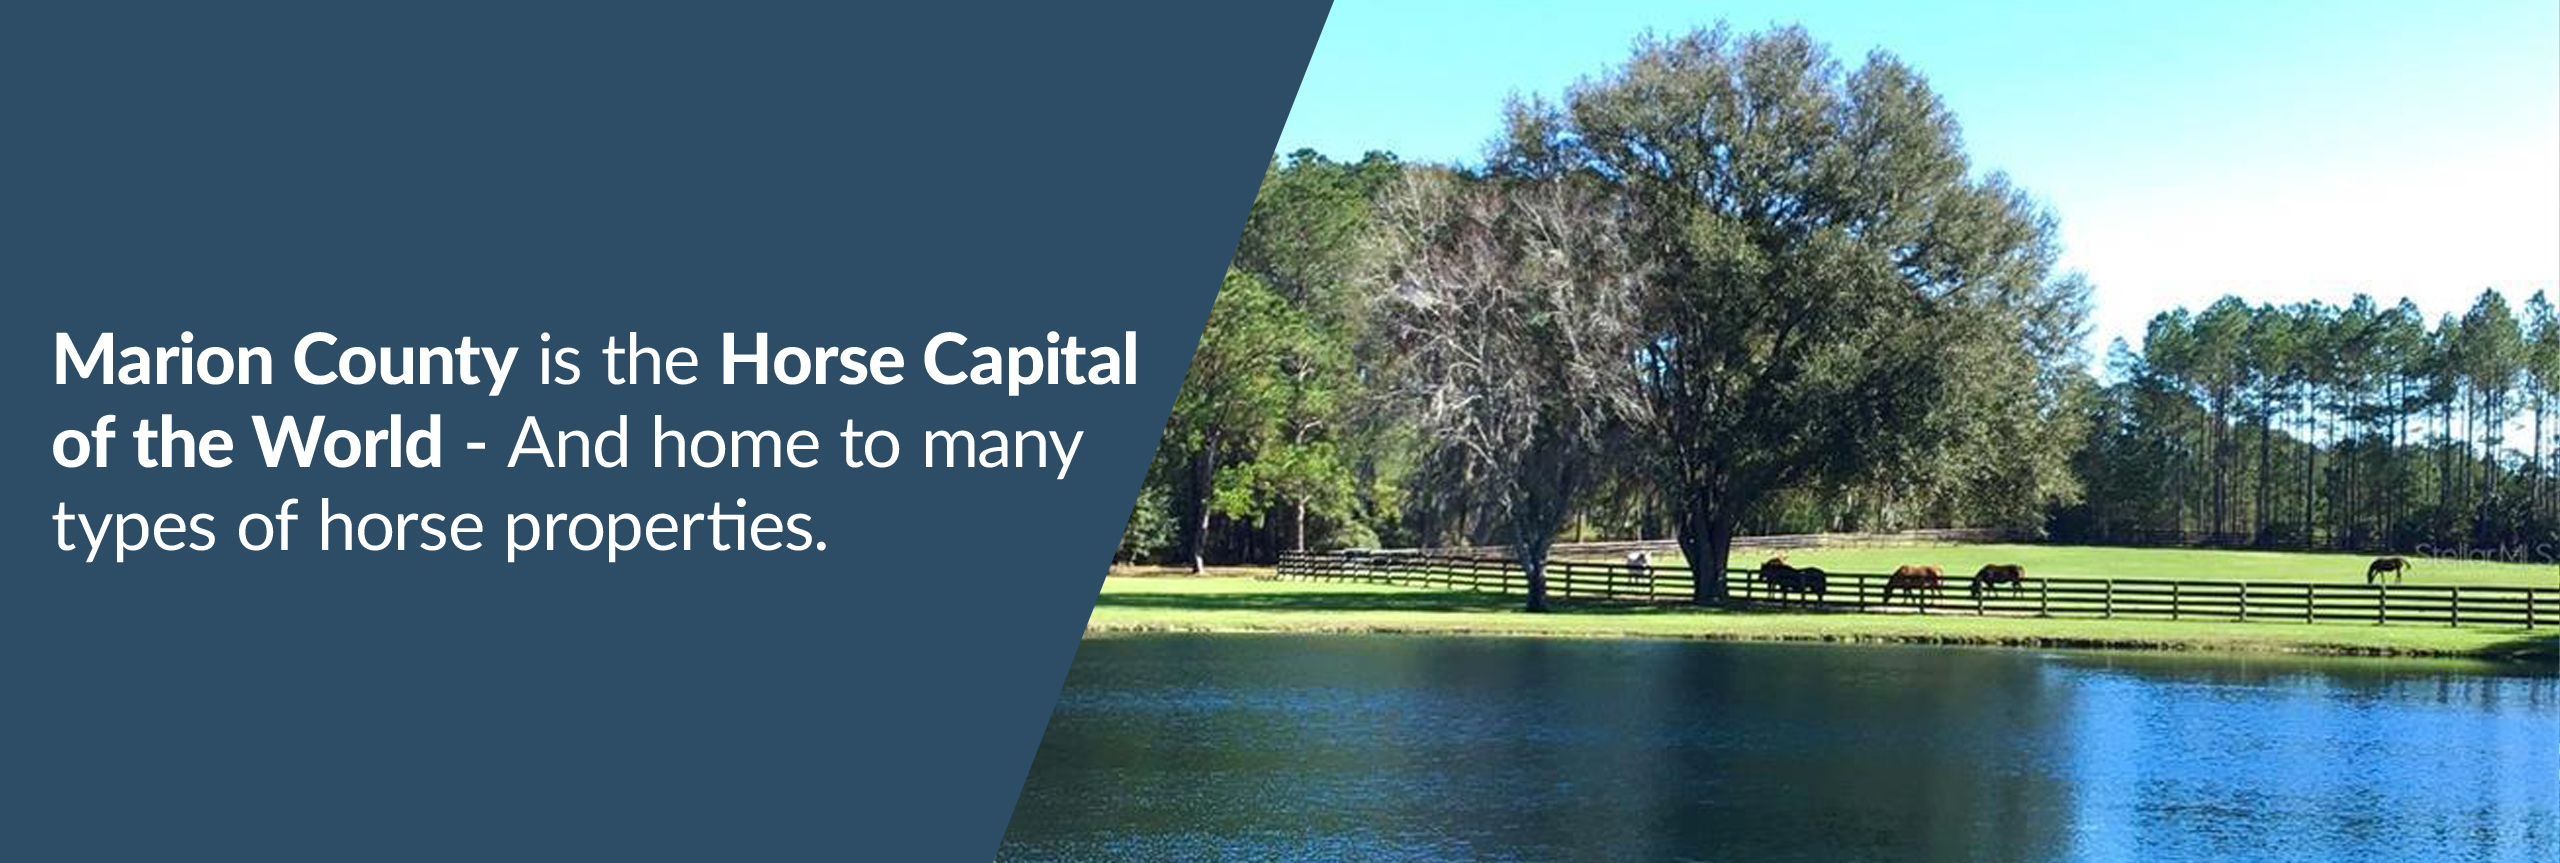 Marion County is the Horse Capital of the World® and home to many horse properties.